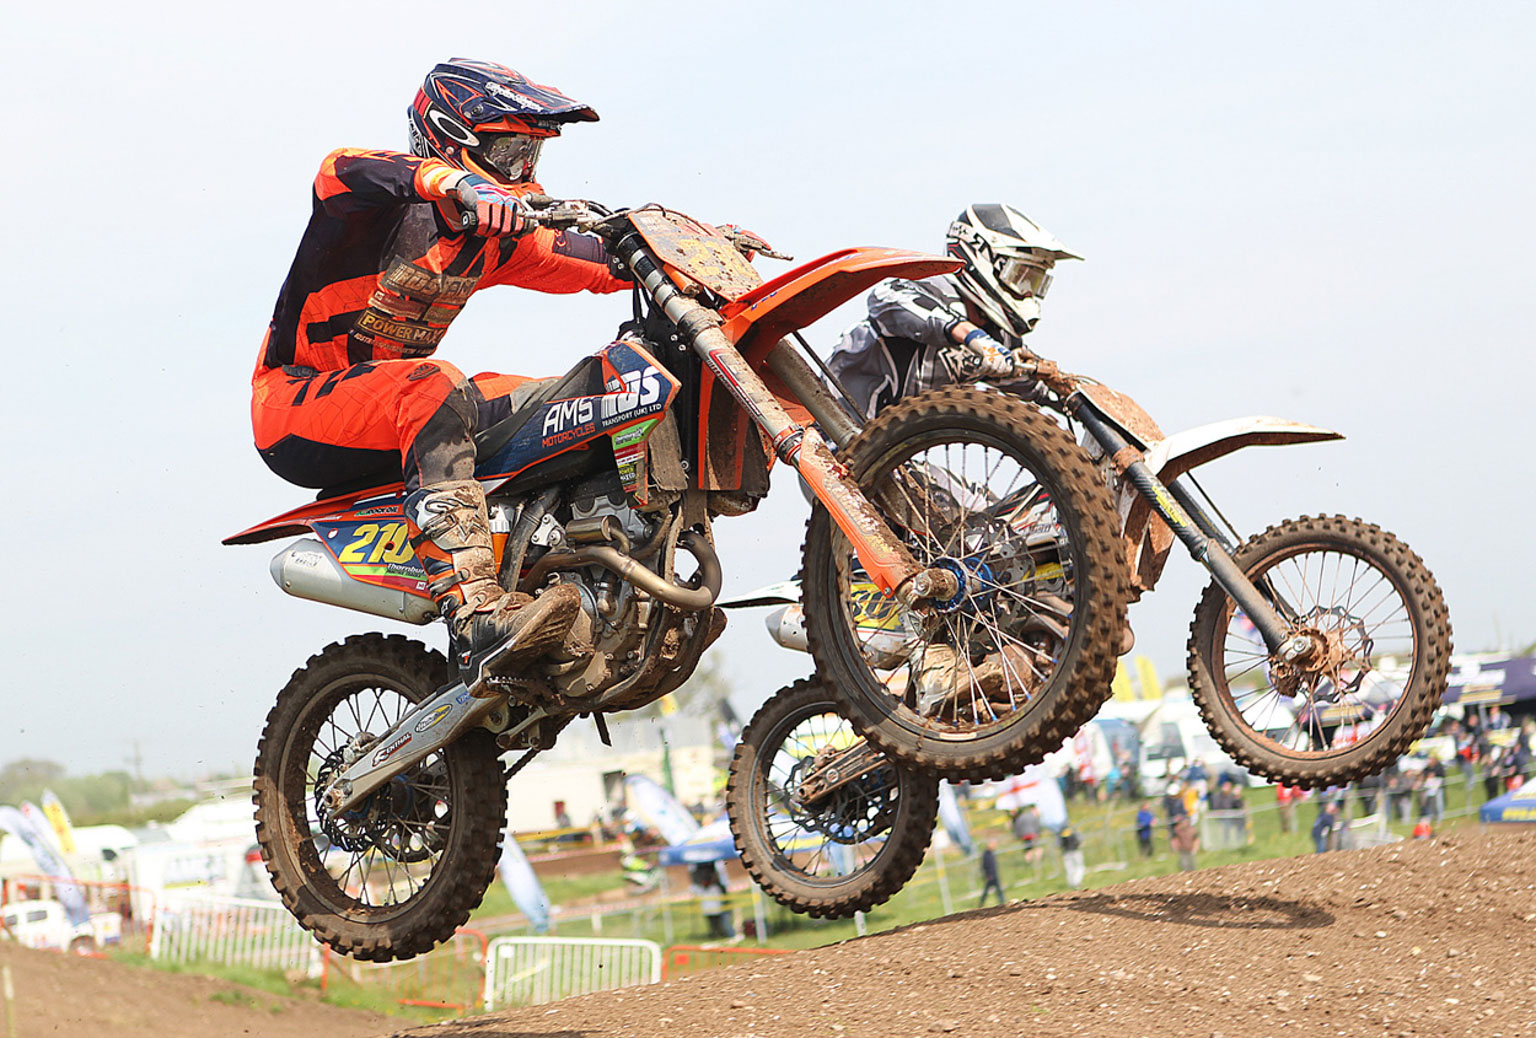 Lee Truman(210) about to make a pass on a MX2 rival